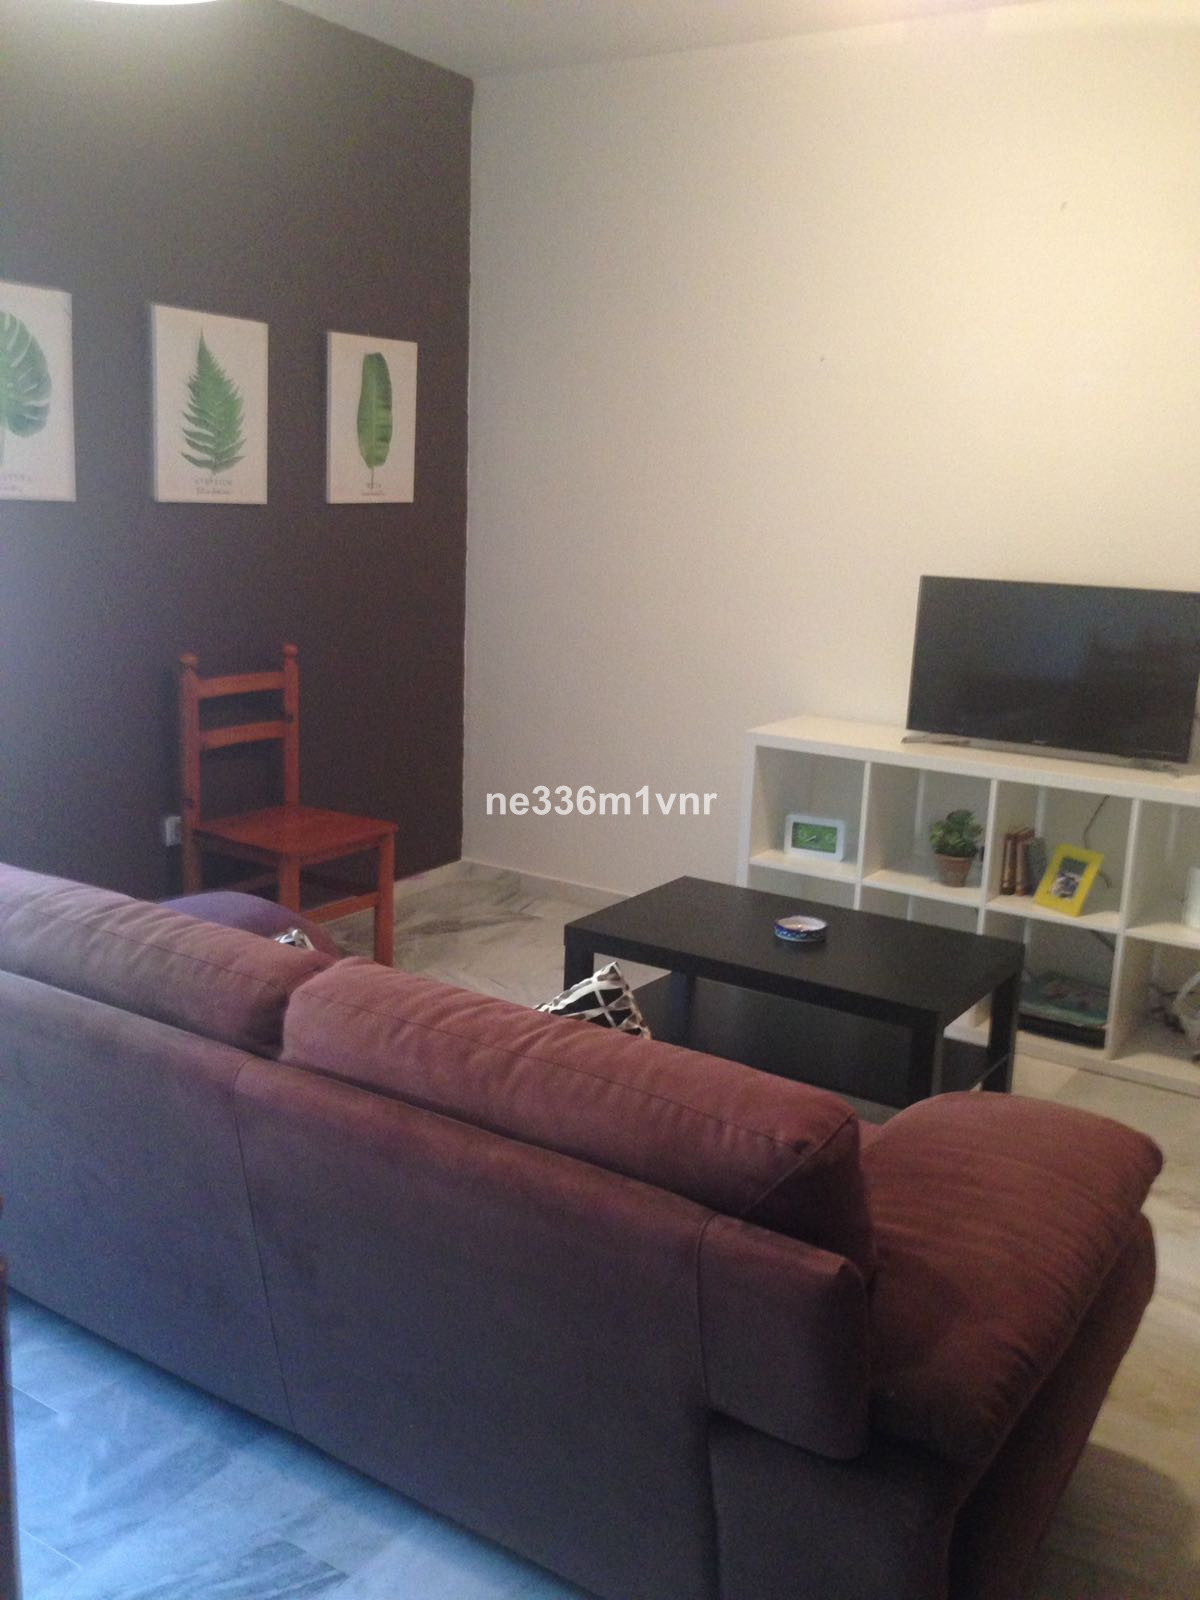 SPECTACULAR APARTMENT RENOVATED 8 MINUTES FROM THE HISTORICAL CENTER !!  The property consists of 50,Spain